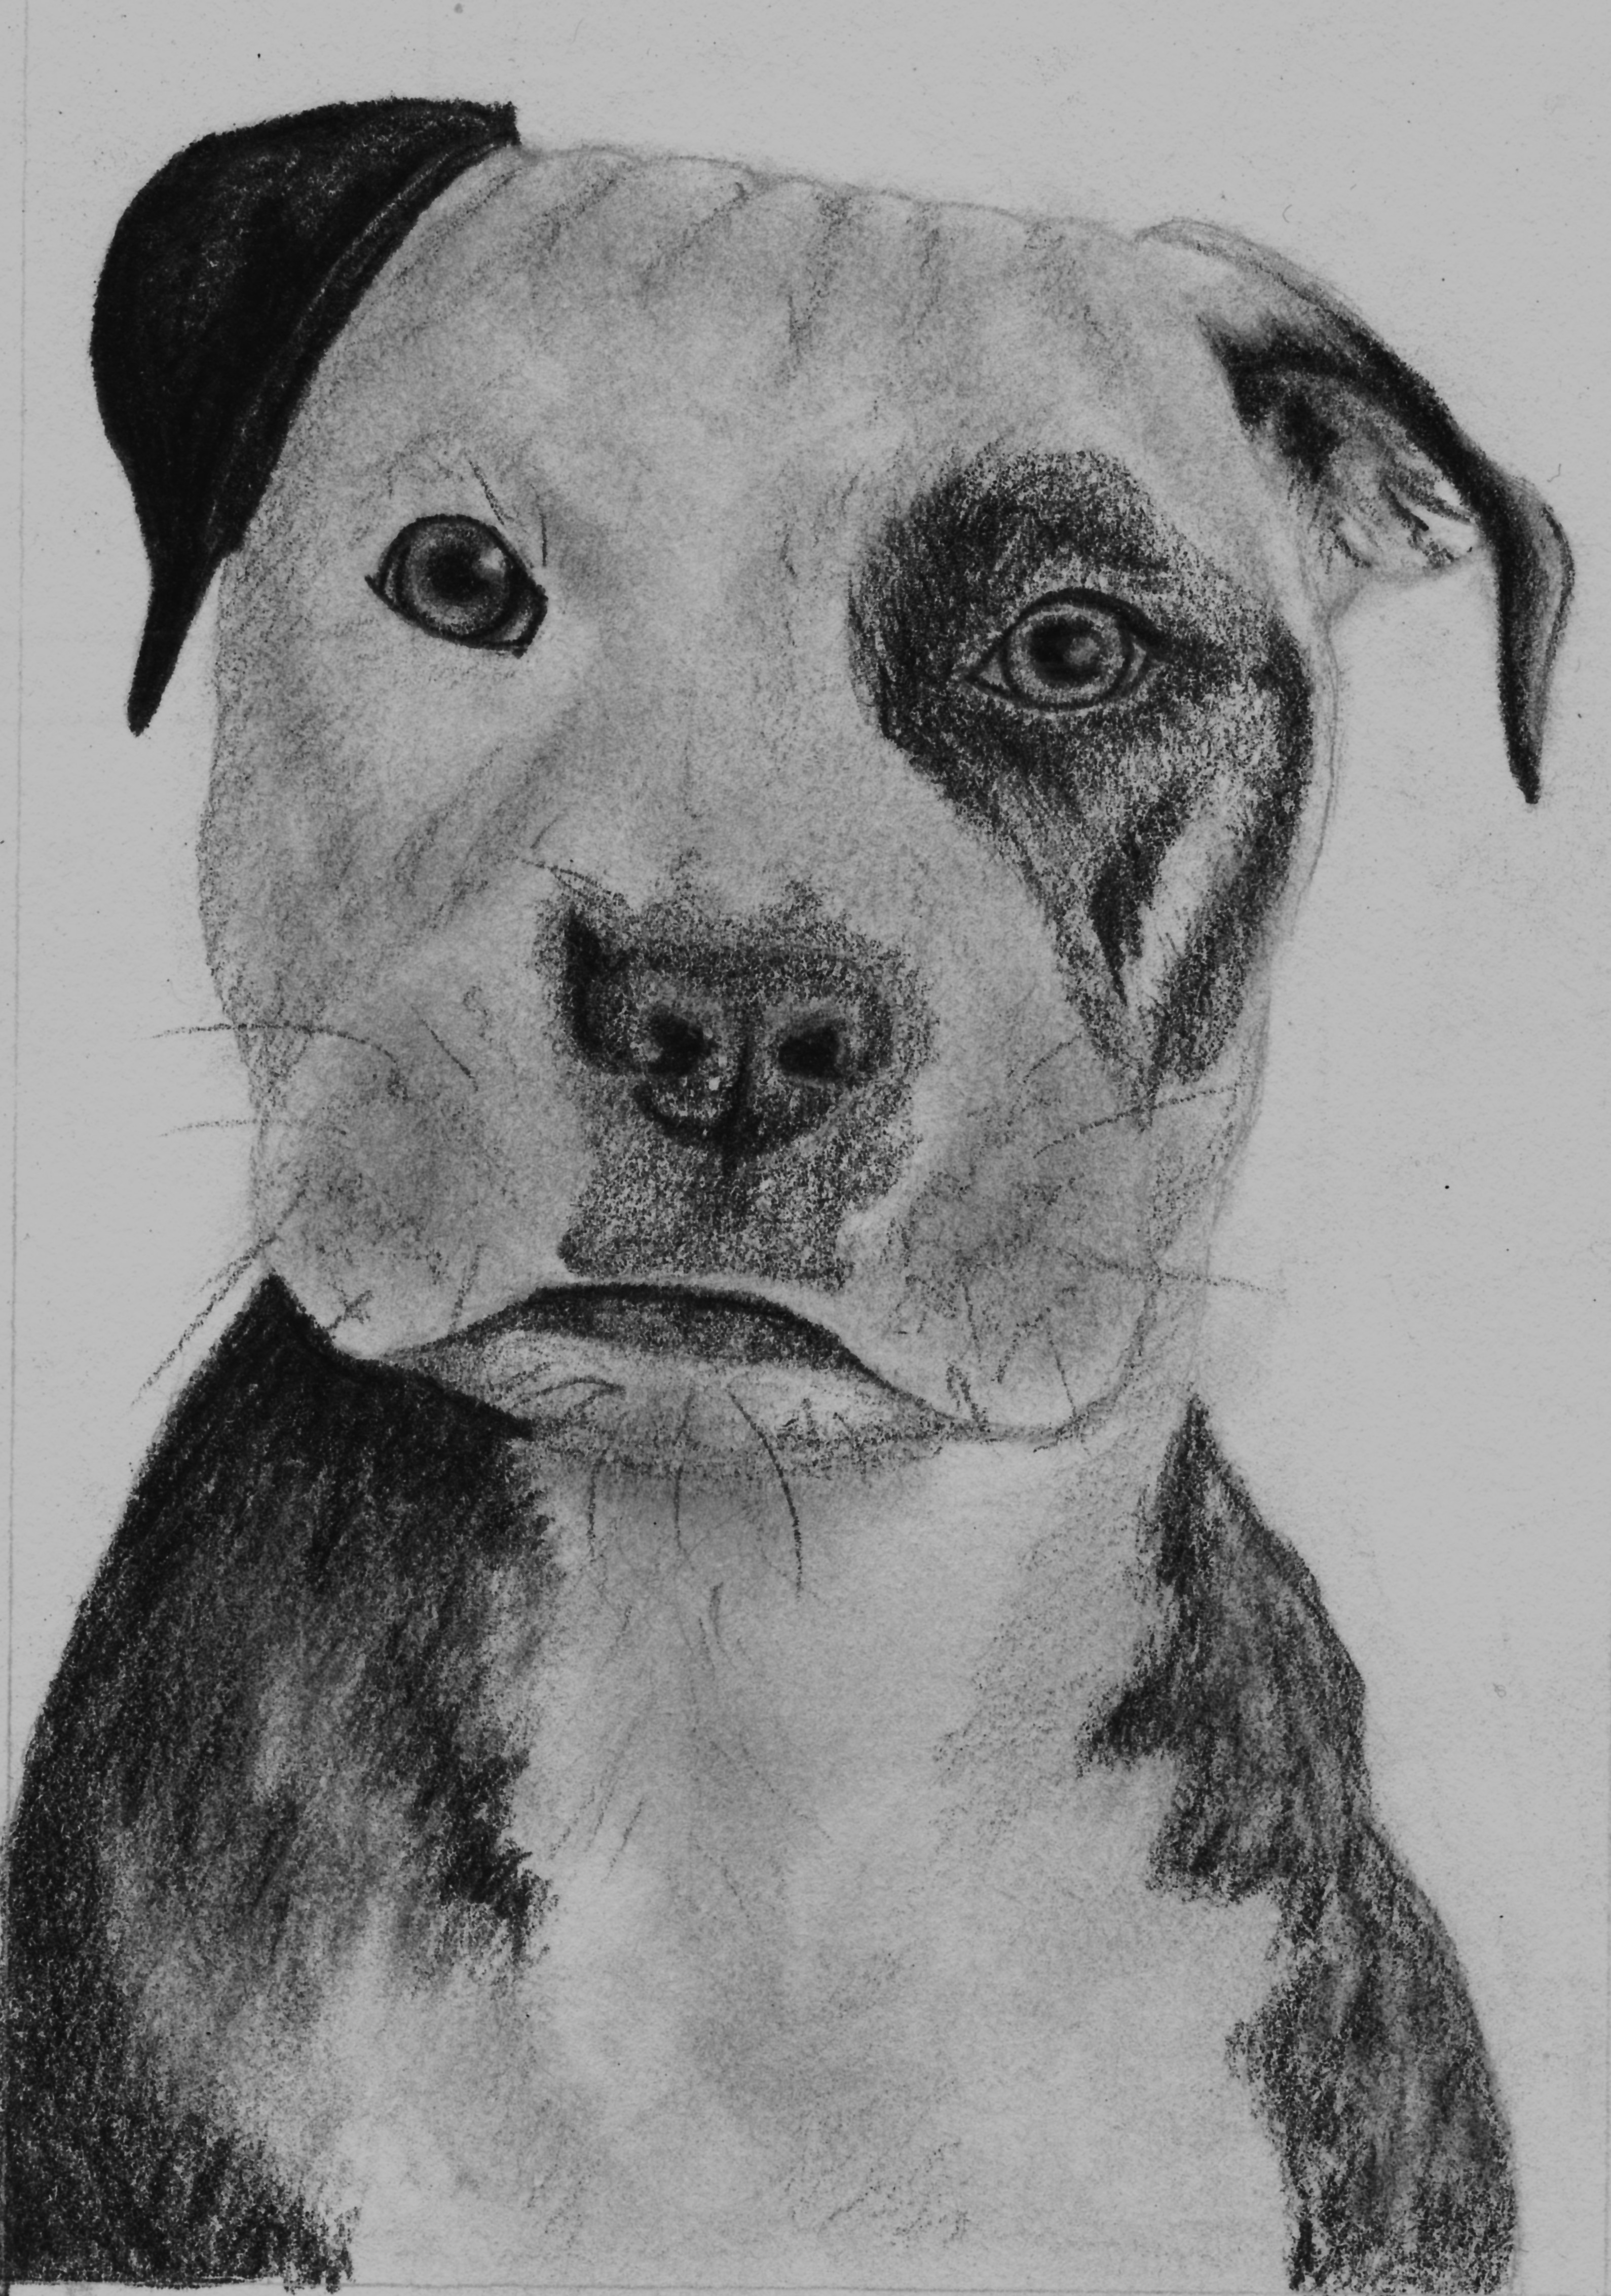 Drawn puppy pencil sketch Drawing Puppy by Pencil Drawing